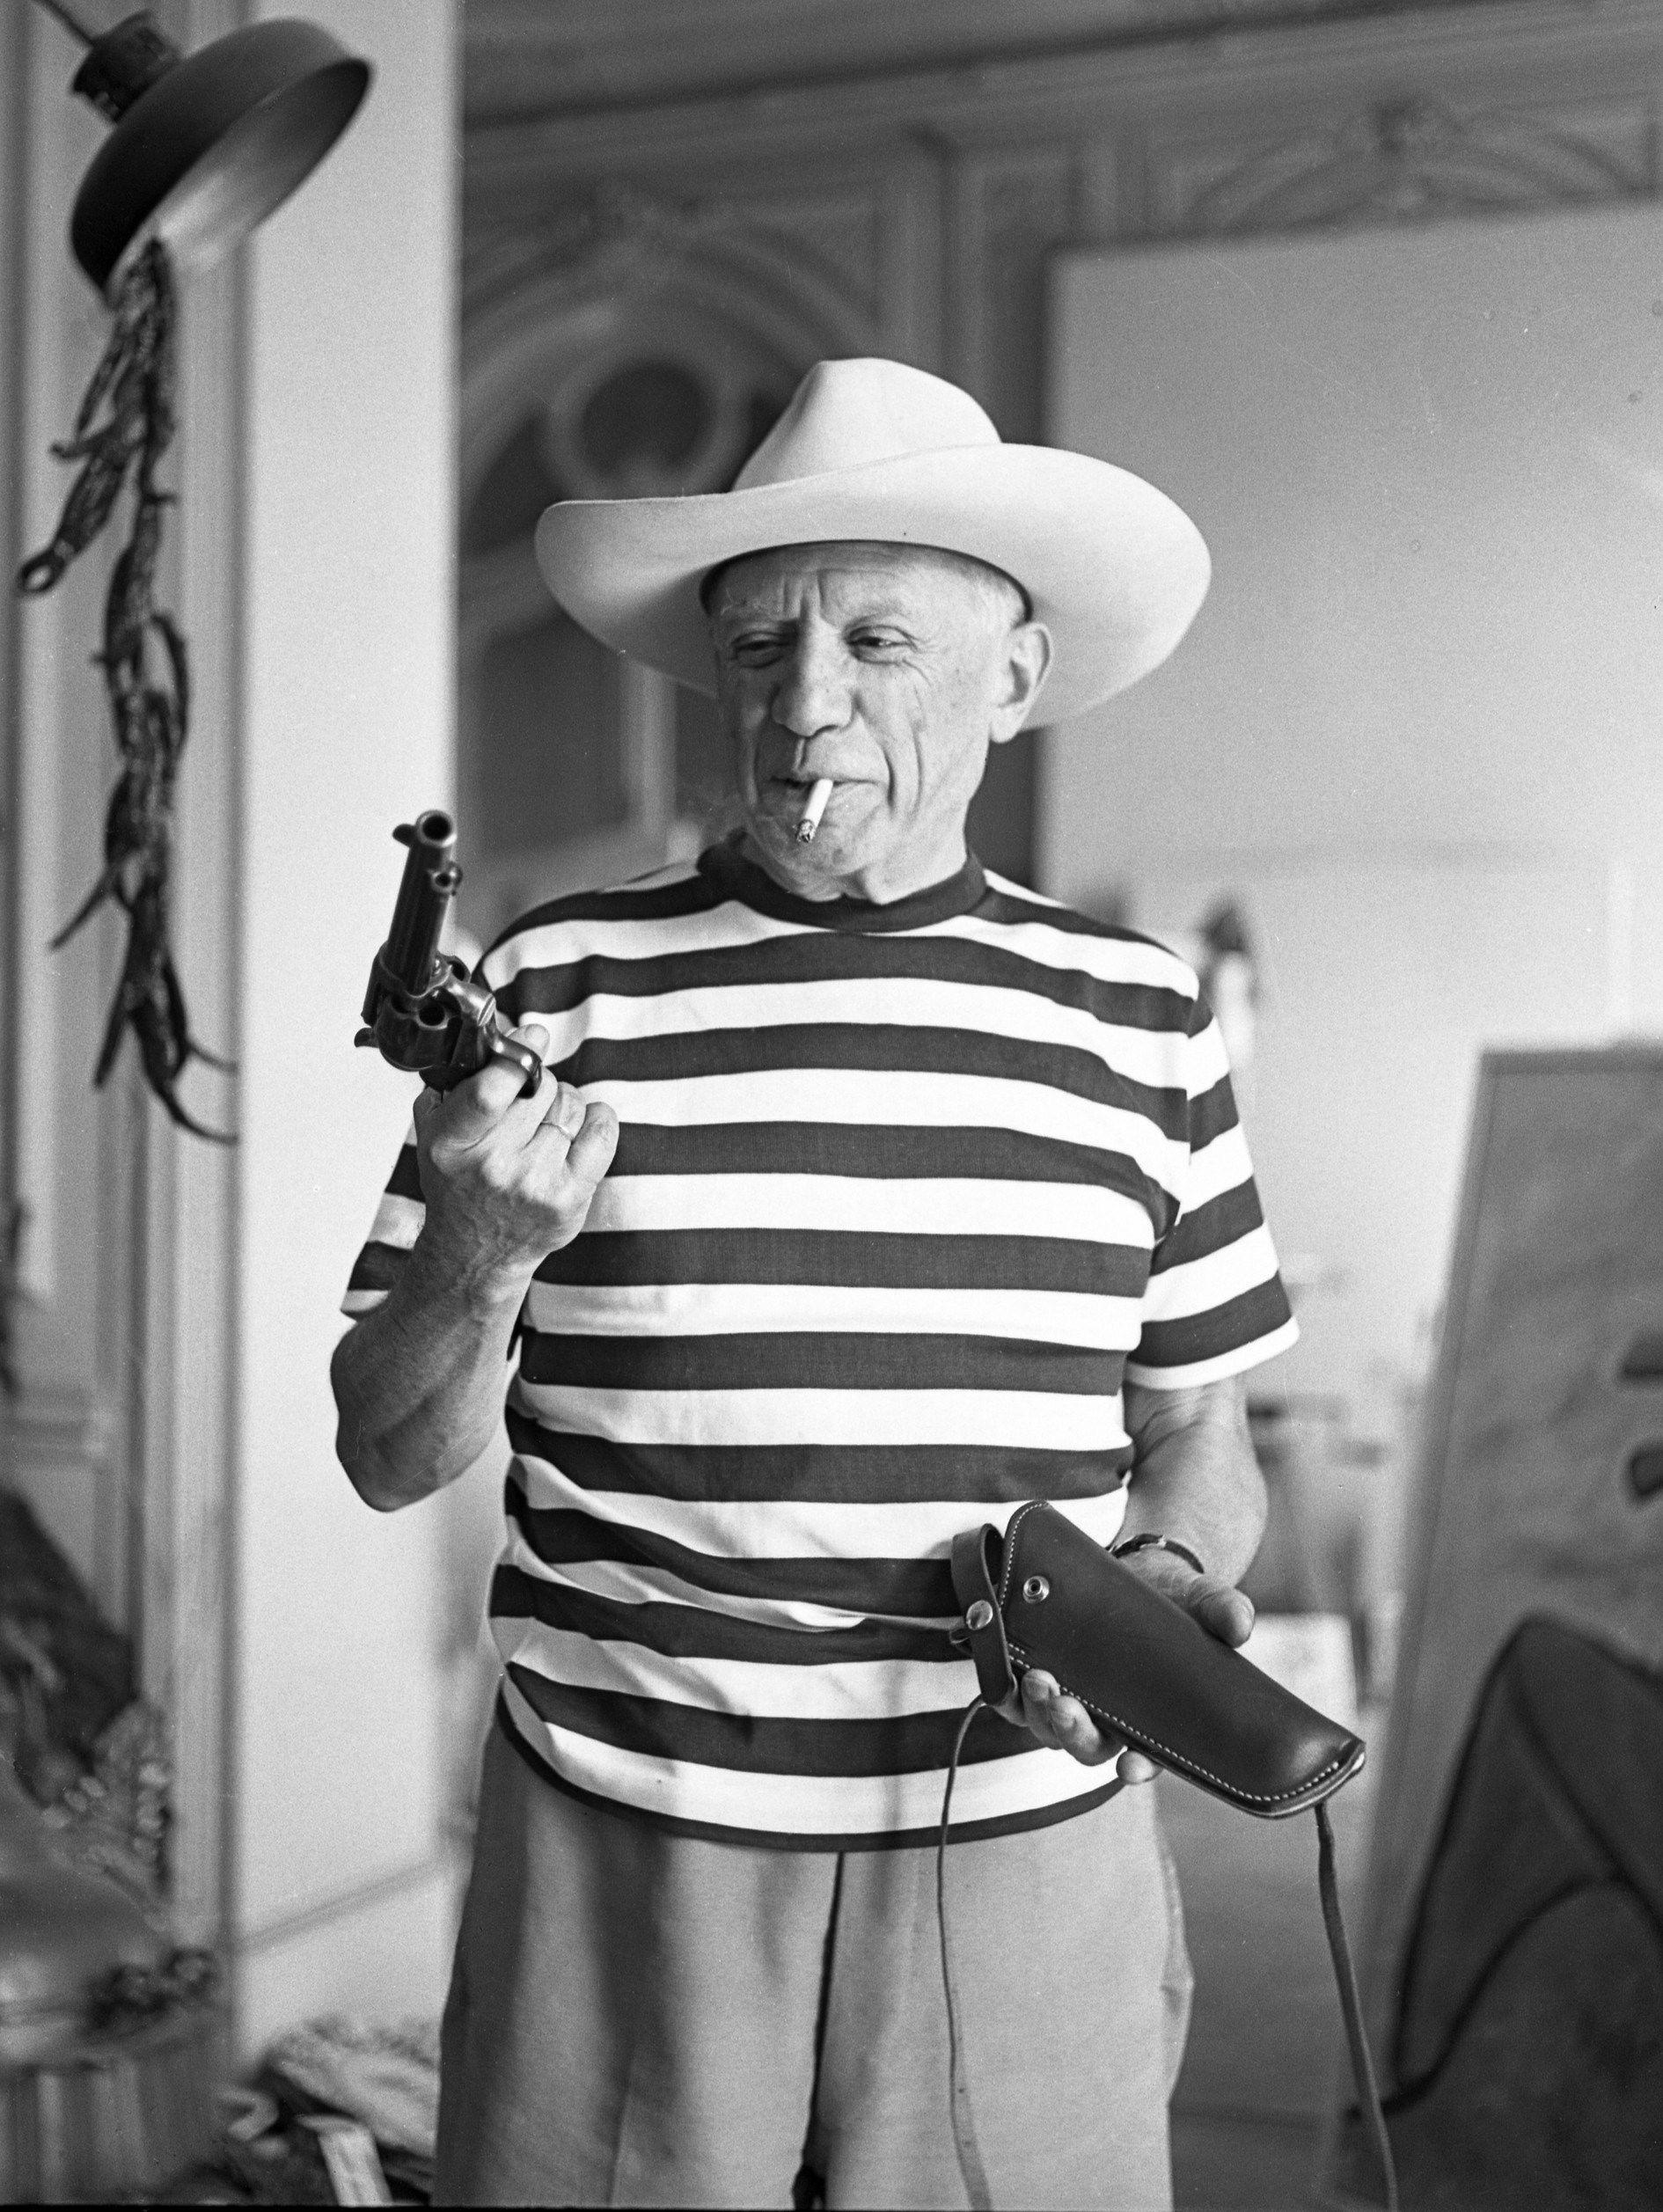 Pablo Picasso | Known people - famous people news and biographies